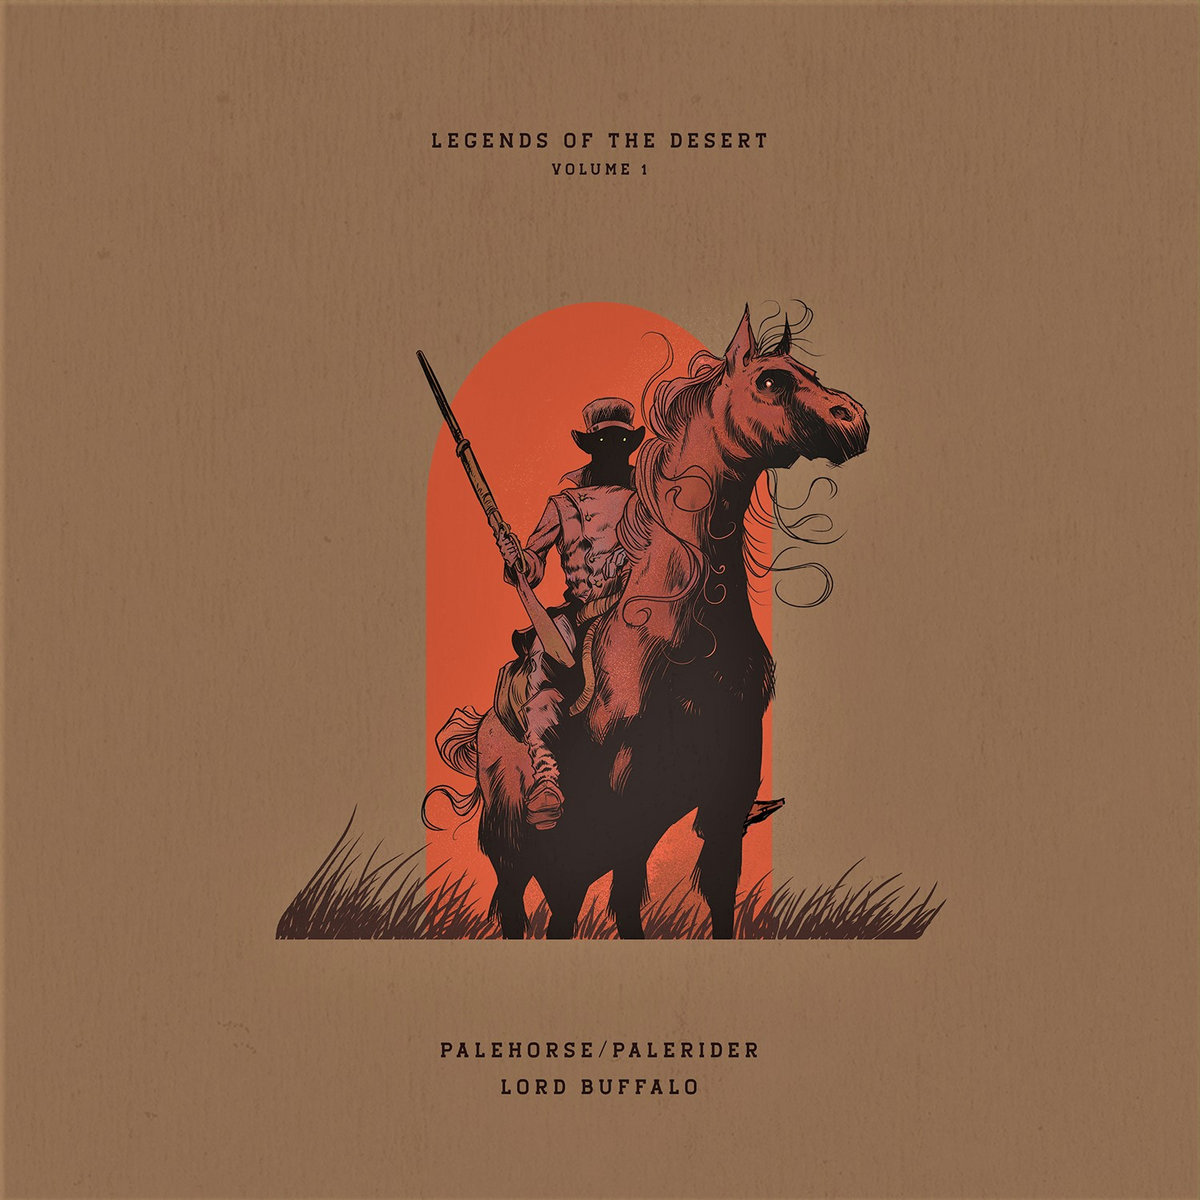 palehorse palerider lord buffalo legends of the desert vol 1